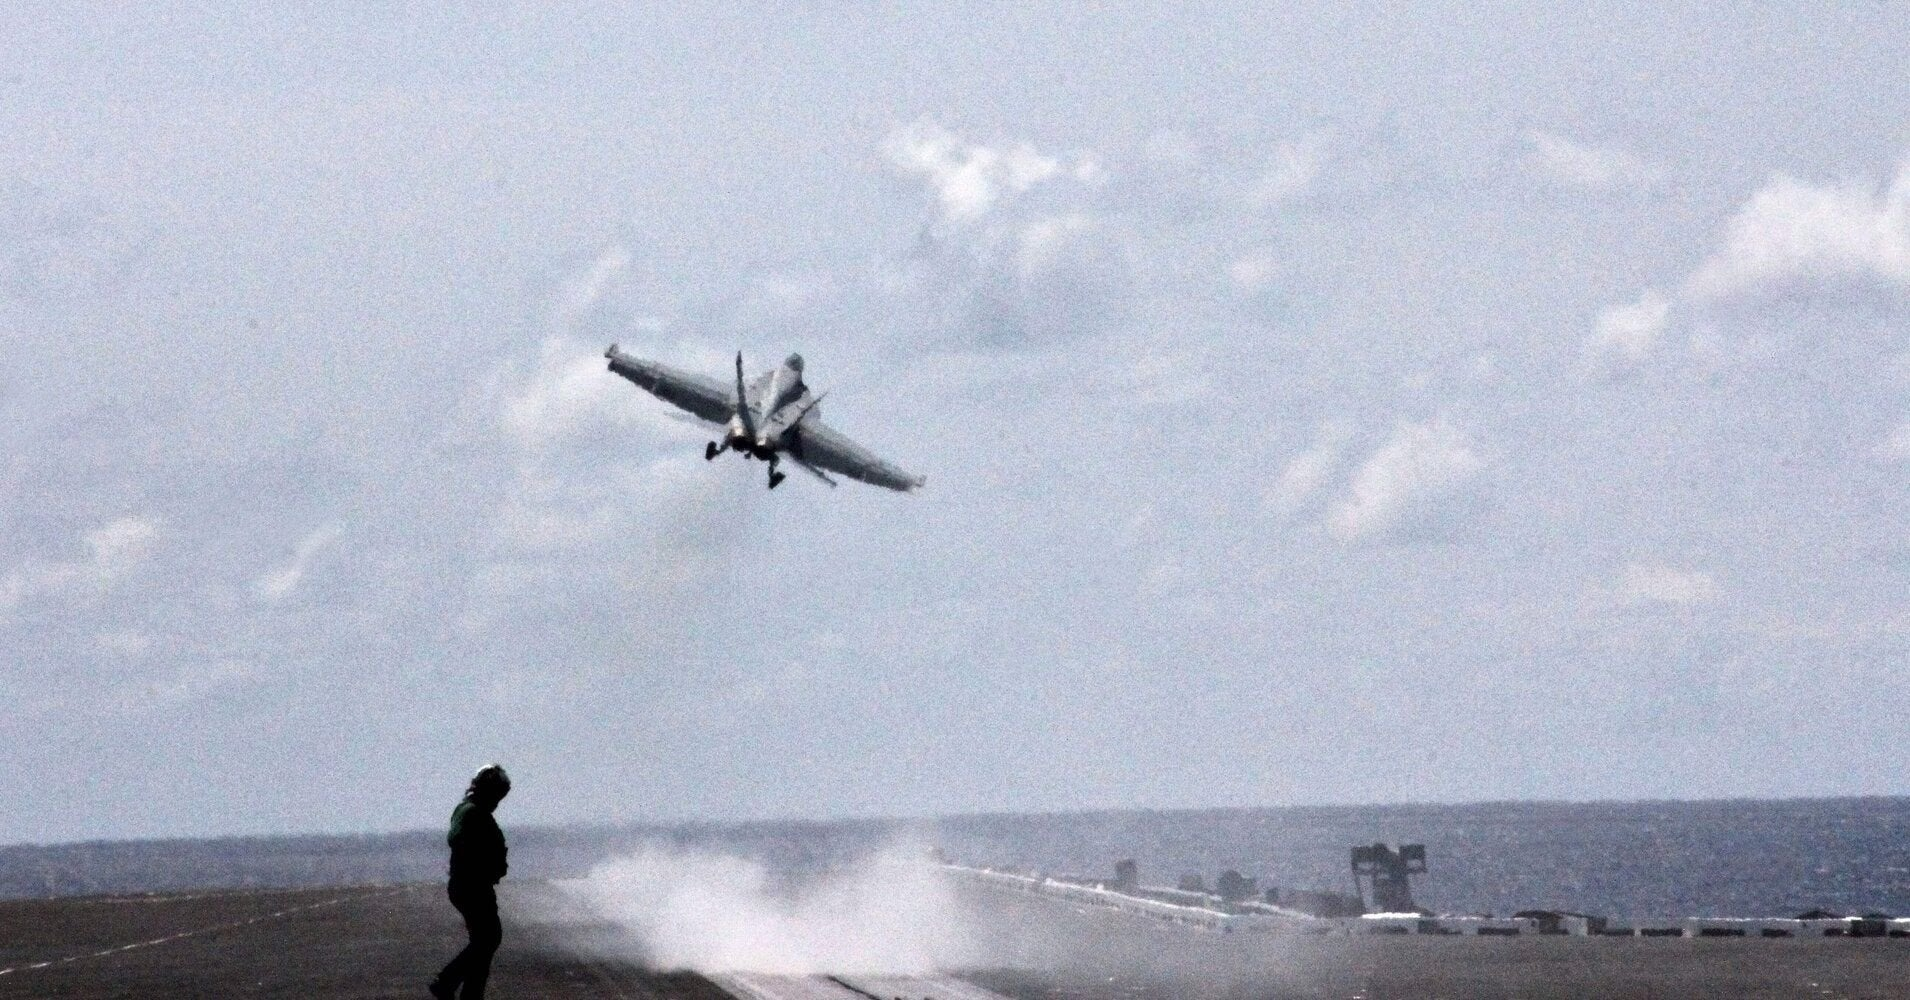 U.S. Navy Pilot Reported 'Near Miss' With UFO Off East Coast